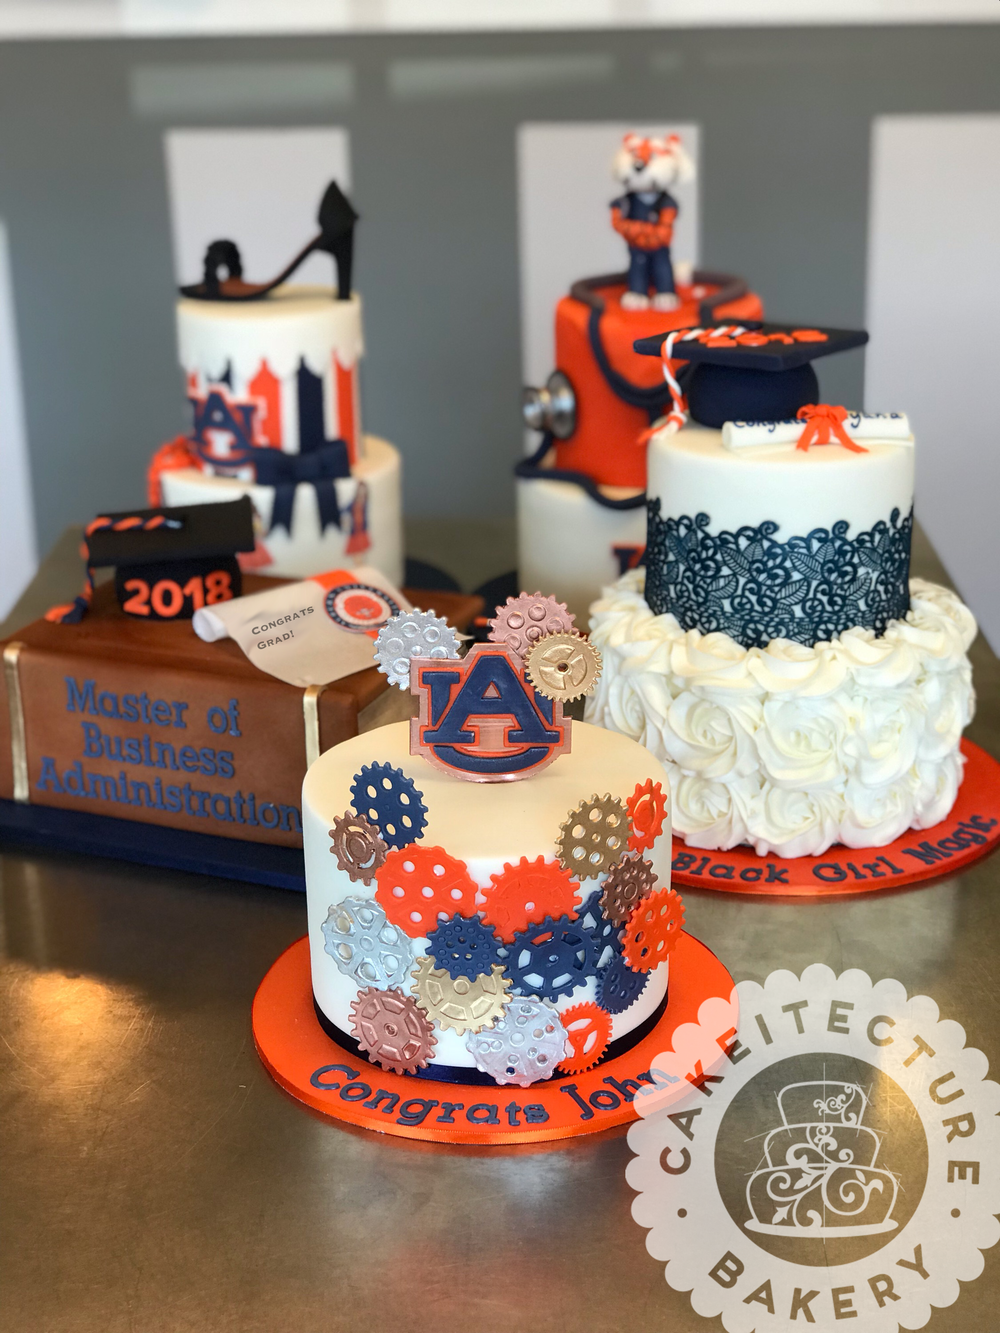 Cakeitecture Bakery Graduation cakes.png